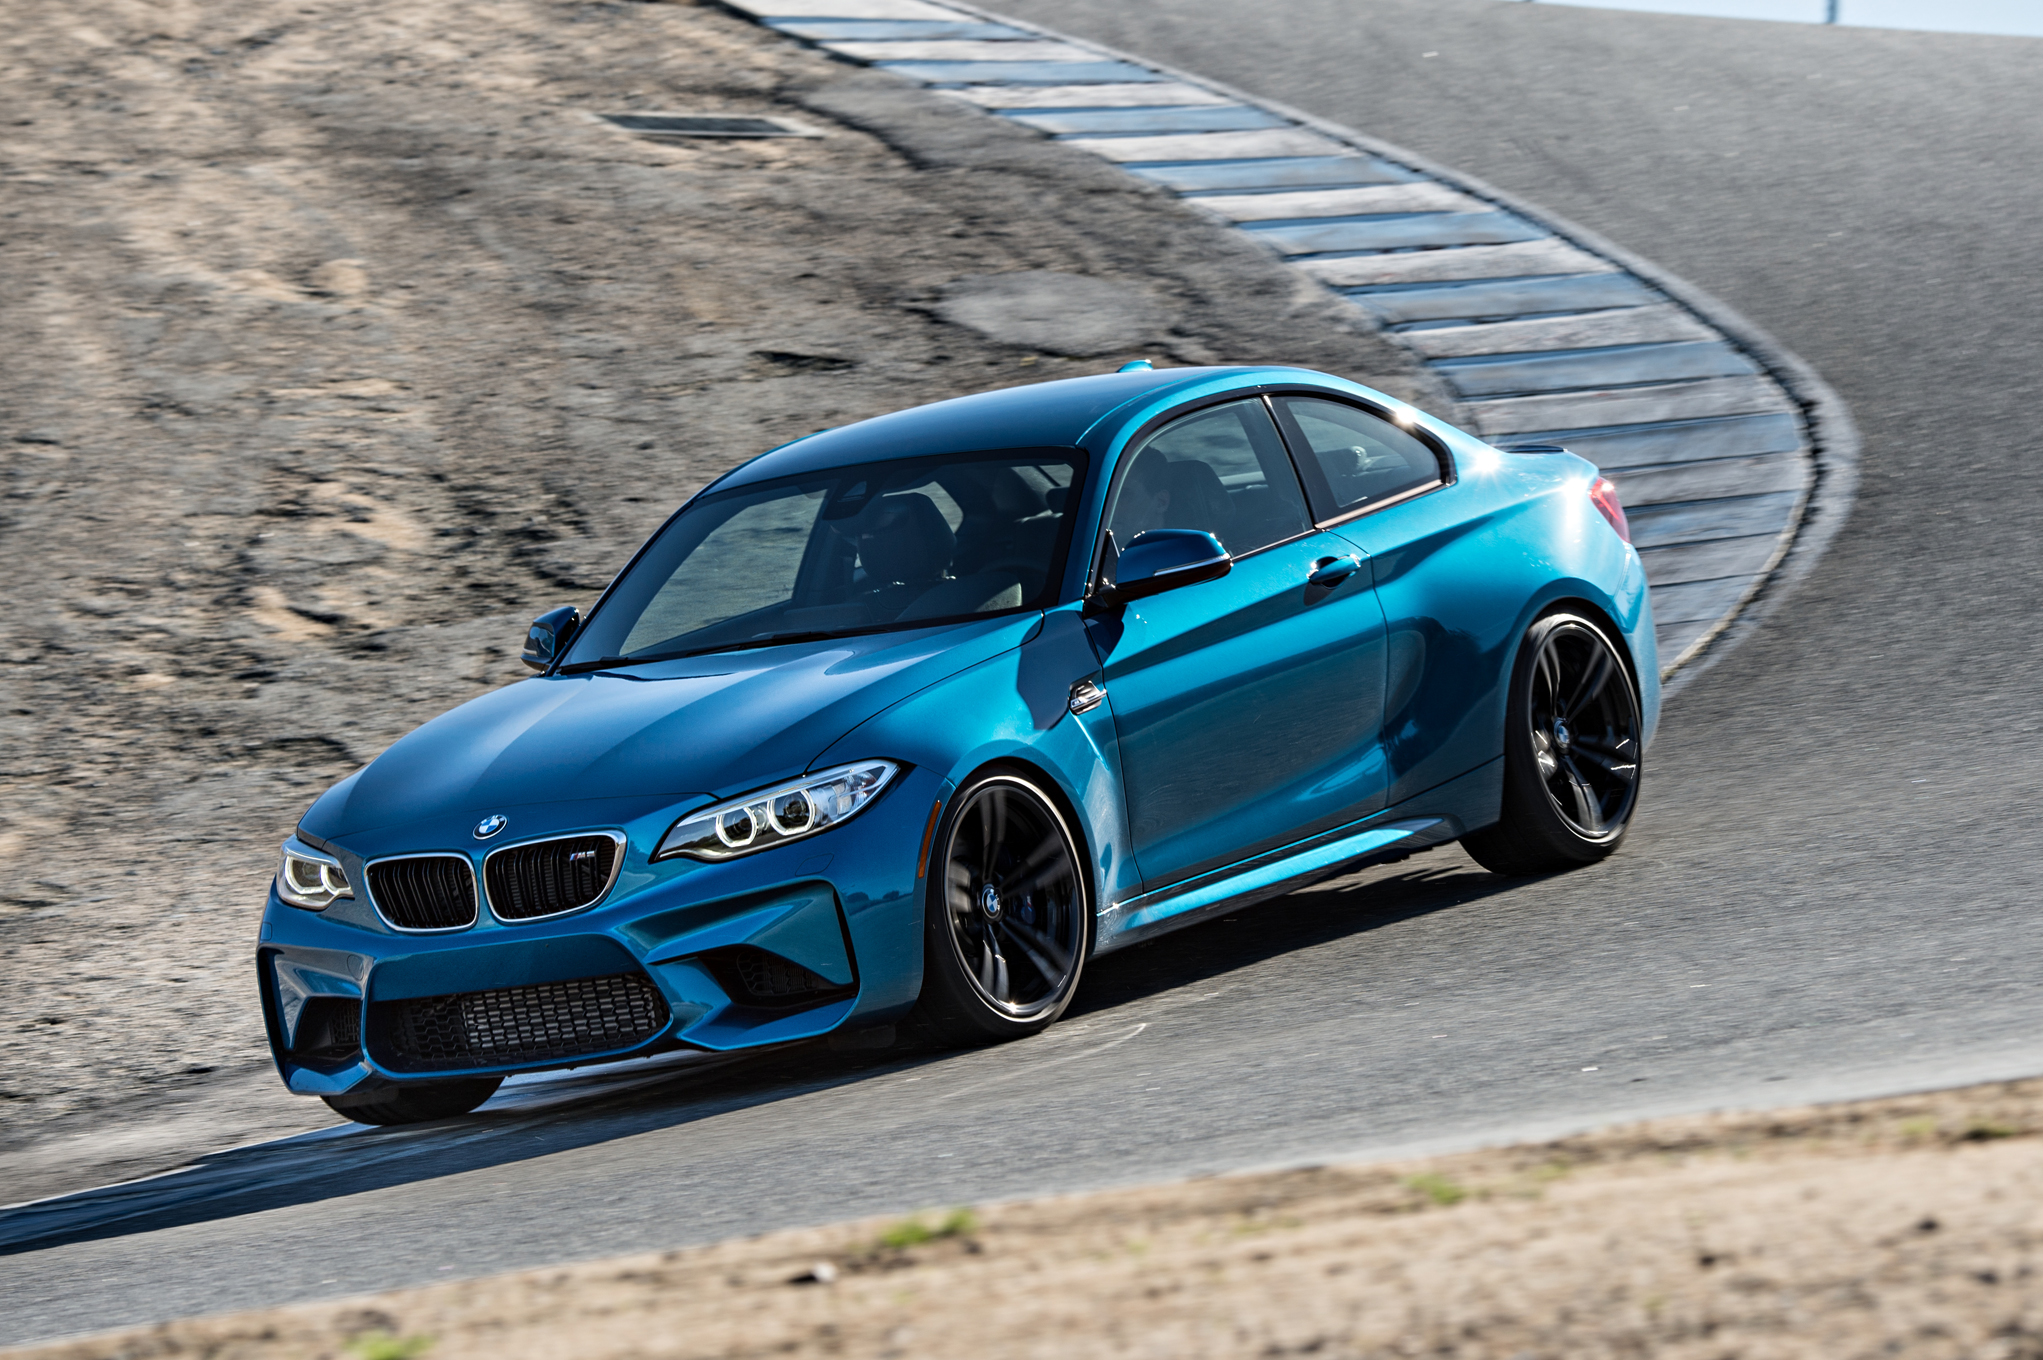 2016 BMW M2 Coupe Blue Metallic Test Drive (Photo 12 of 61)